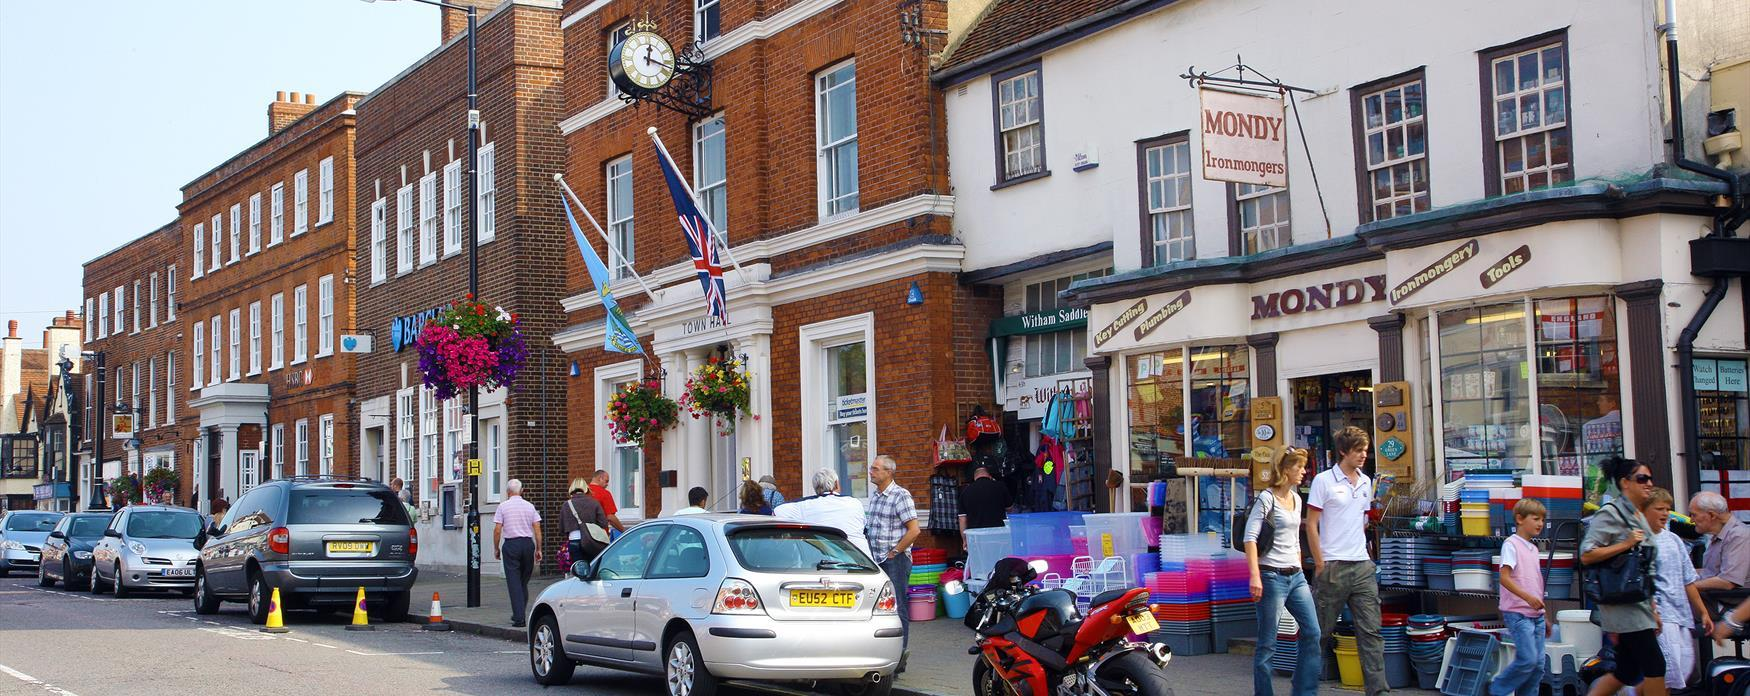 Image of Witham High Street